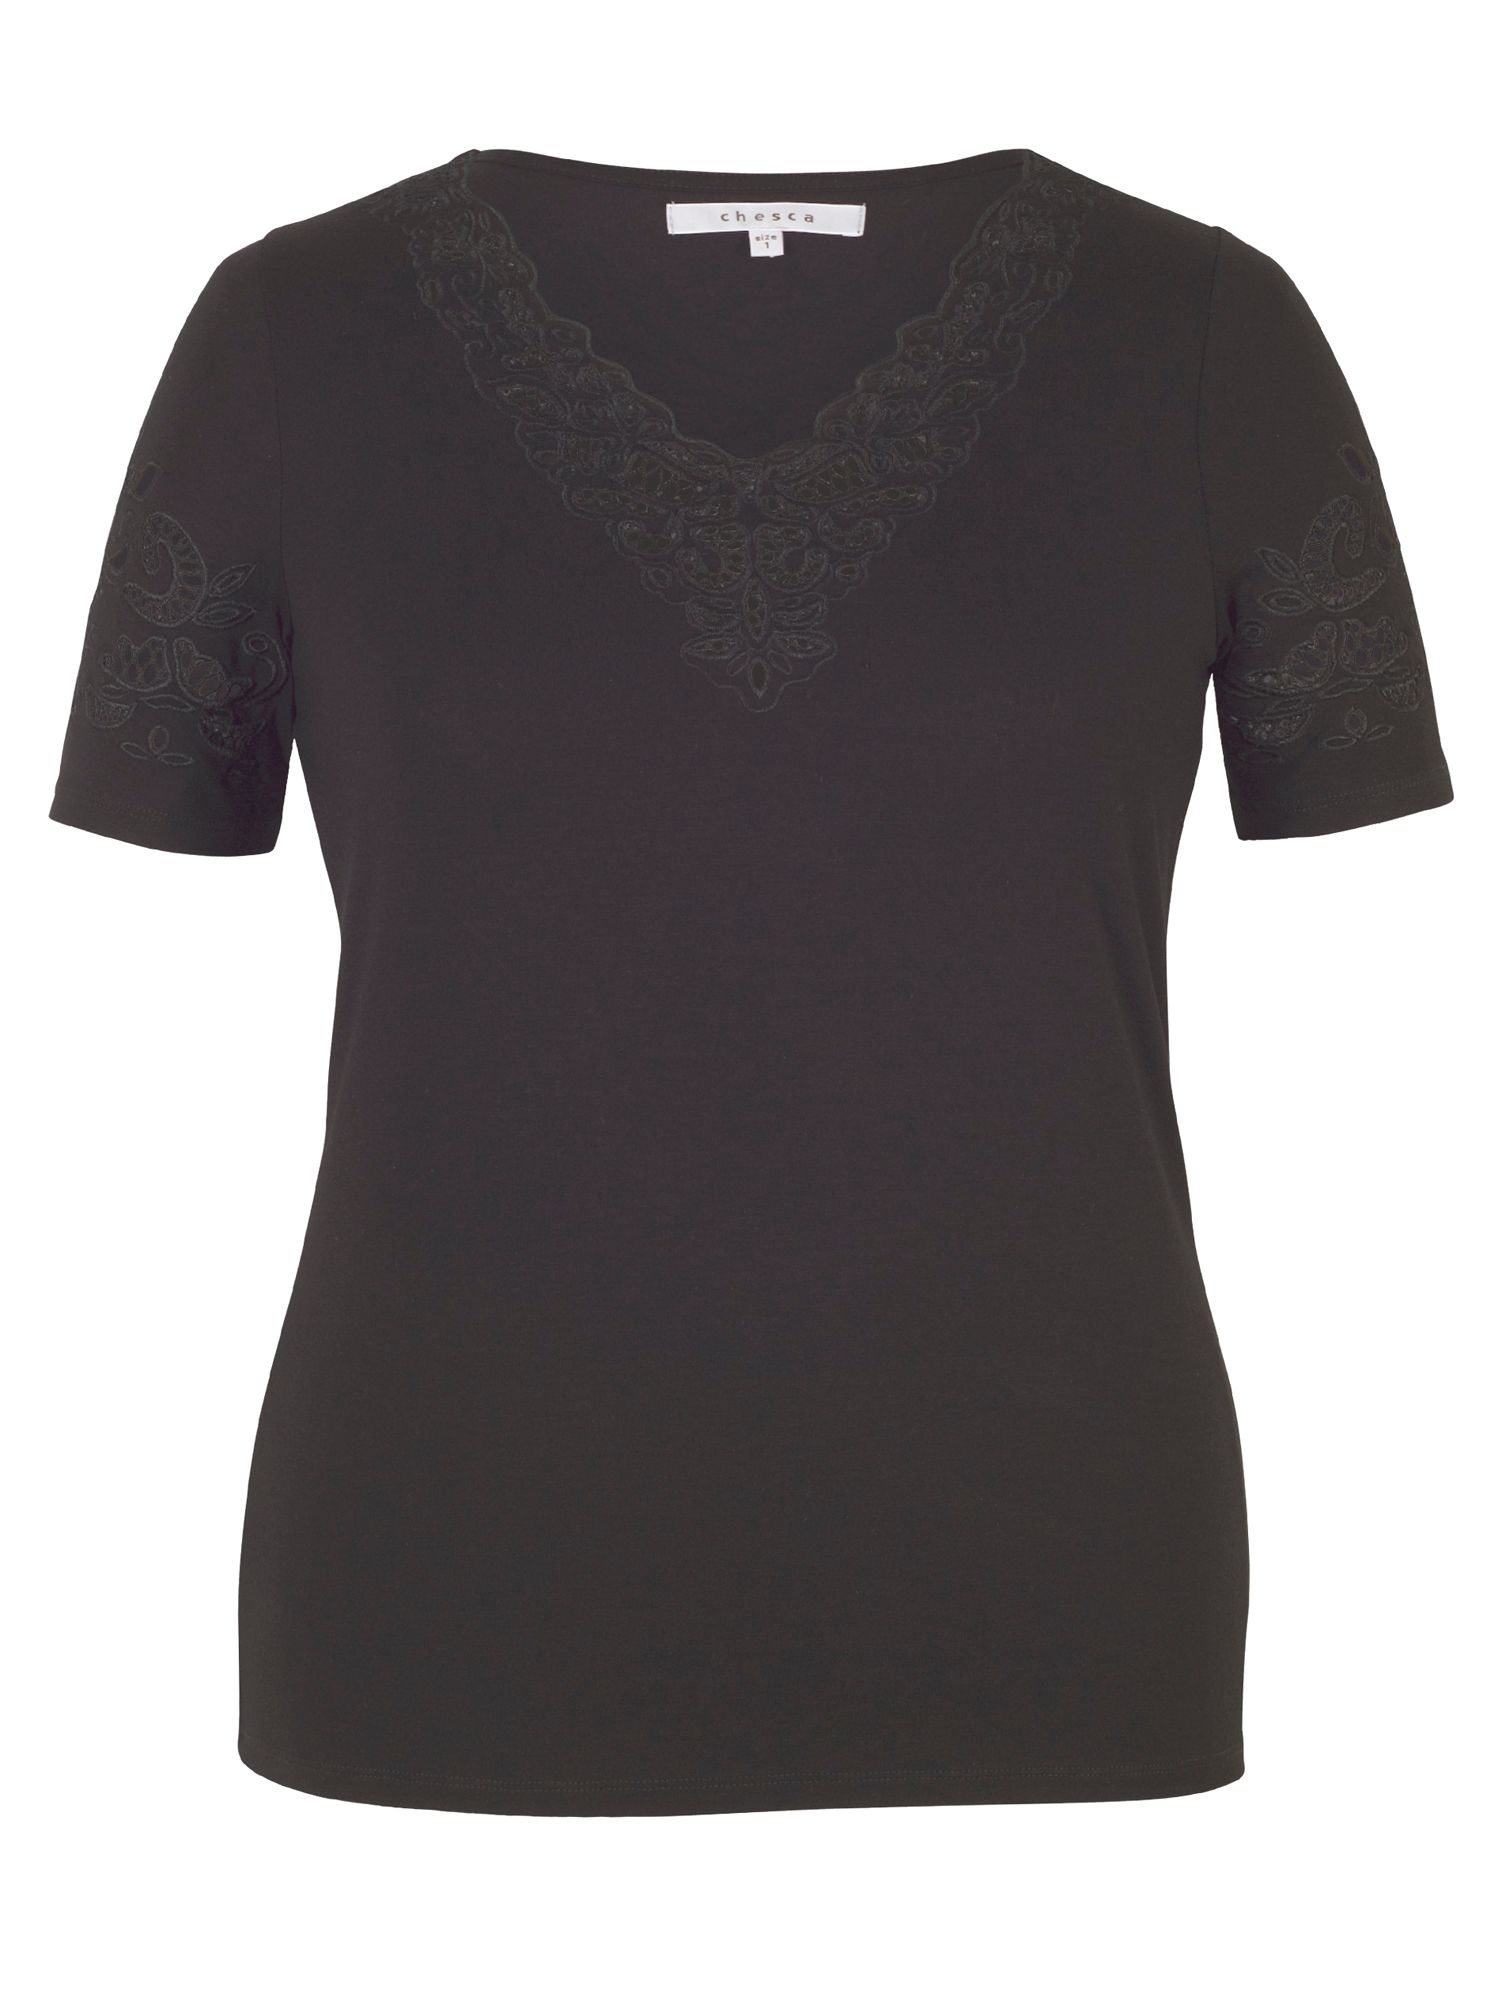 Chesca Embroidered Cutout V-Neck T-Shirt, Black